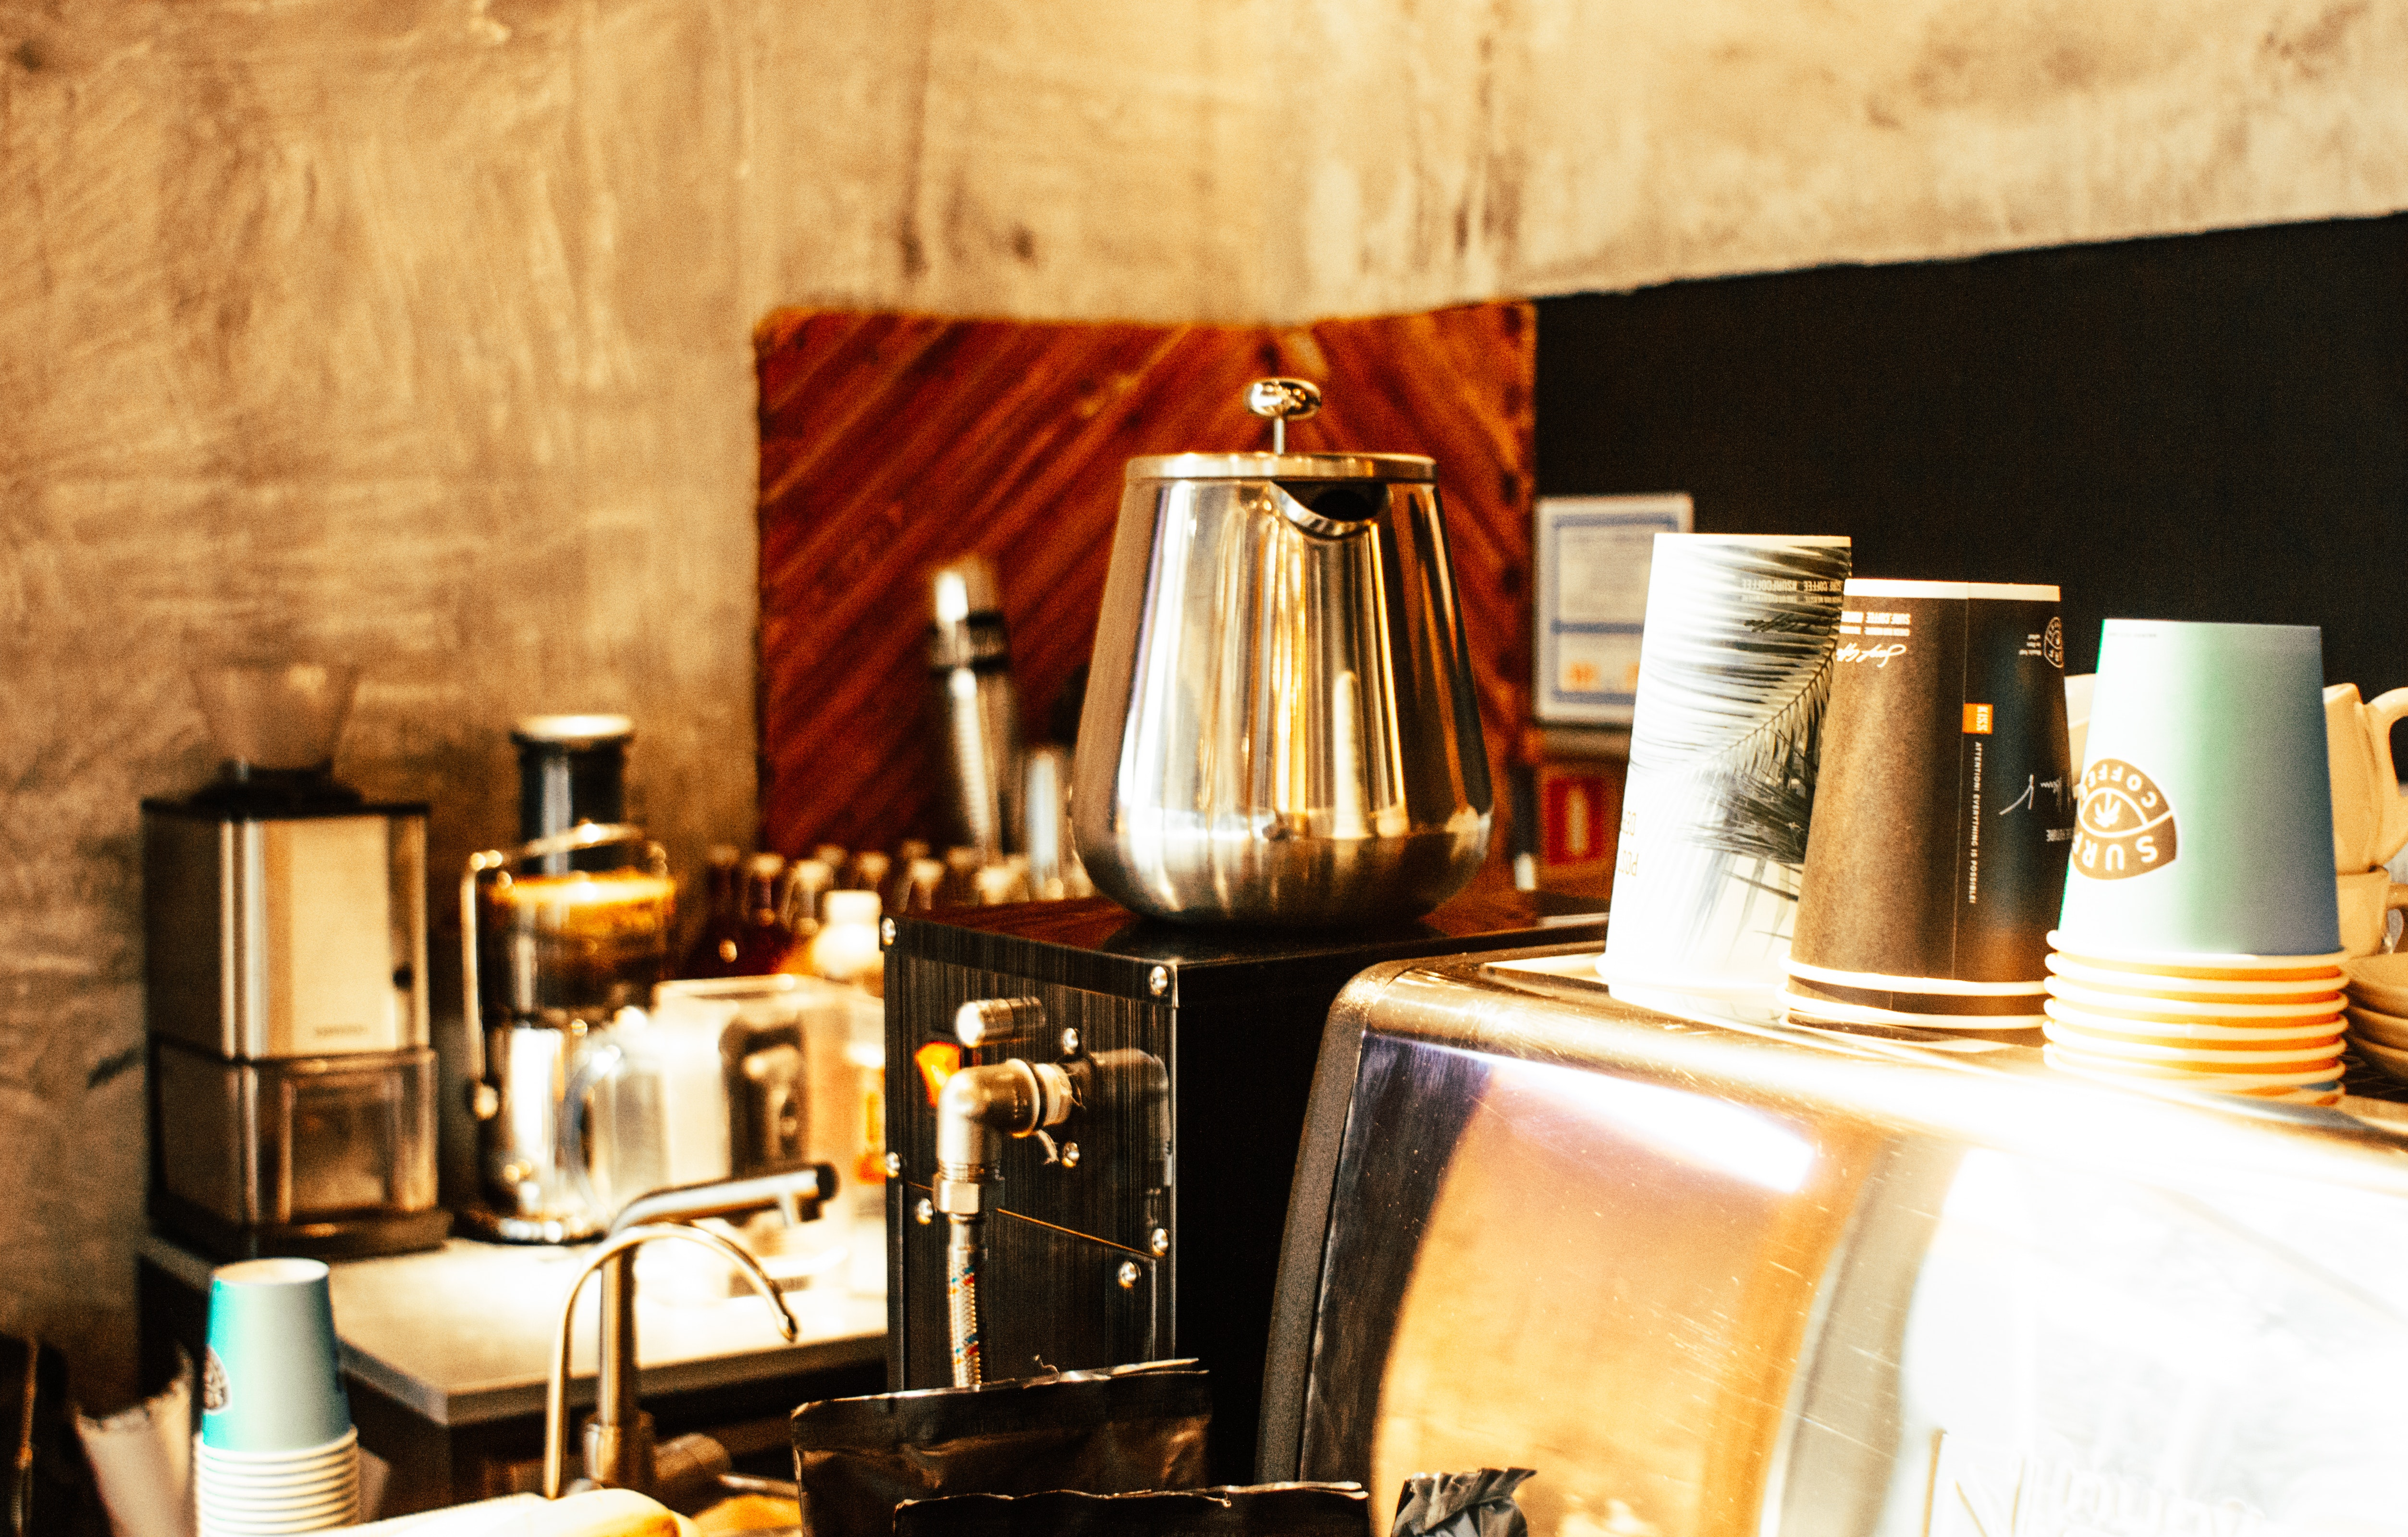 cafe-coffee-shop-containers-756089